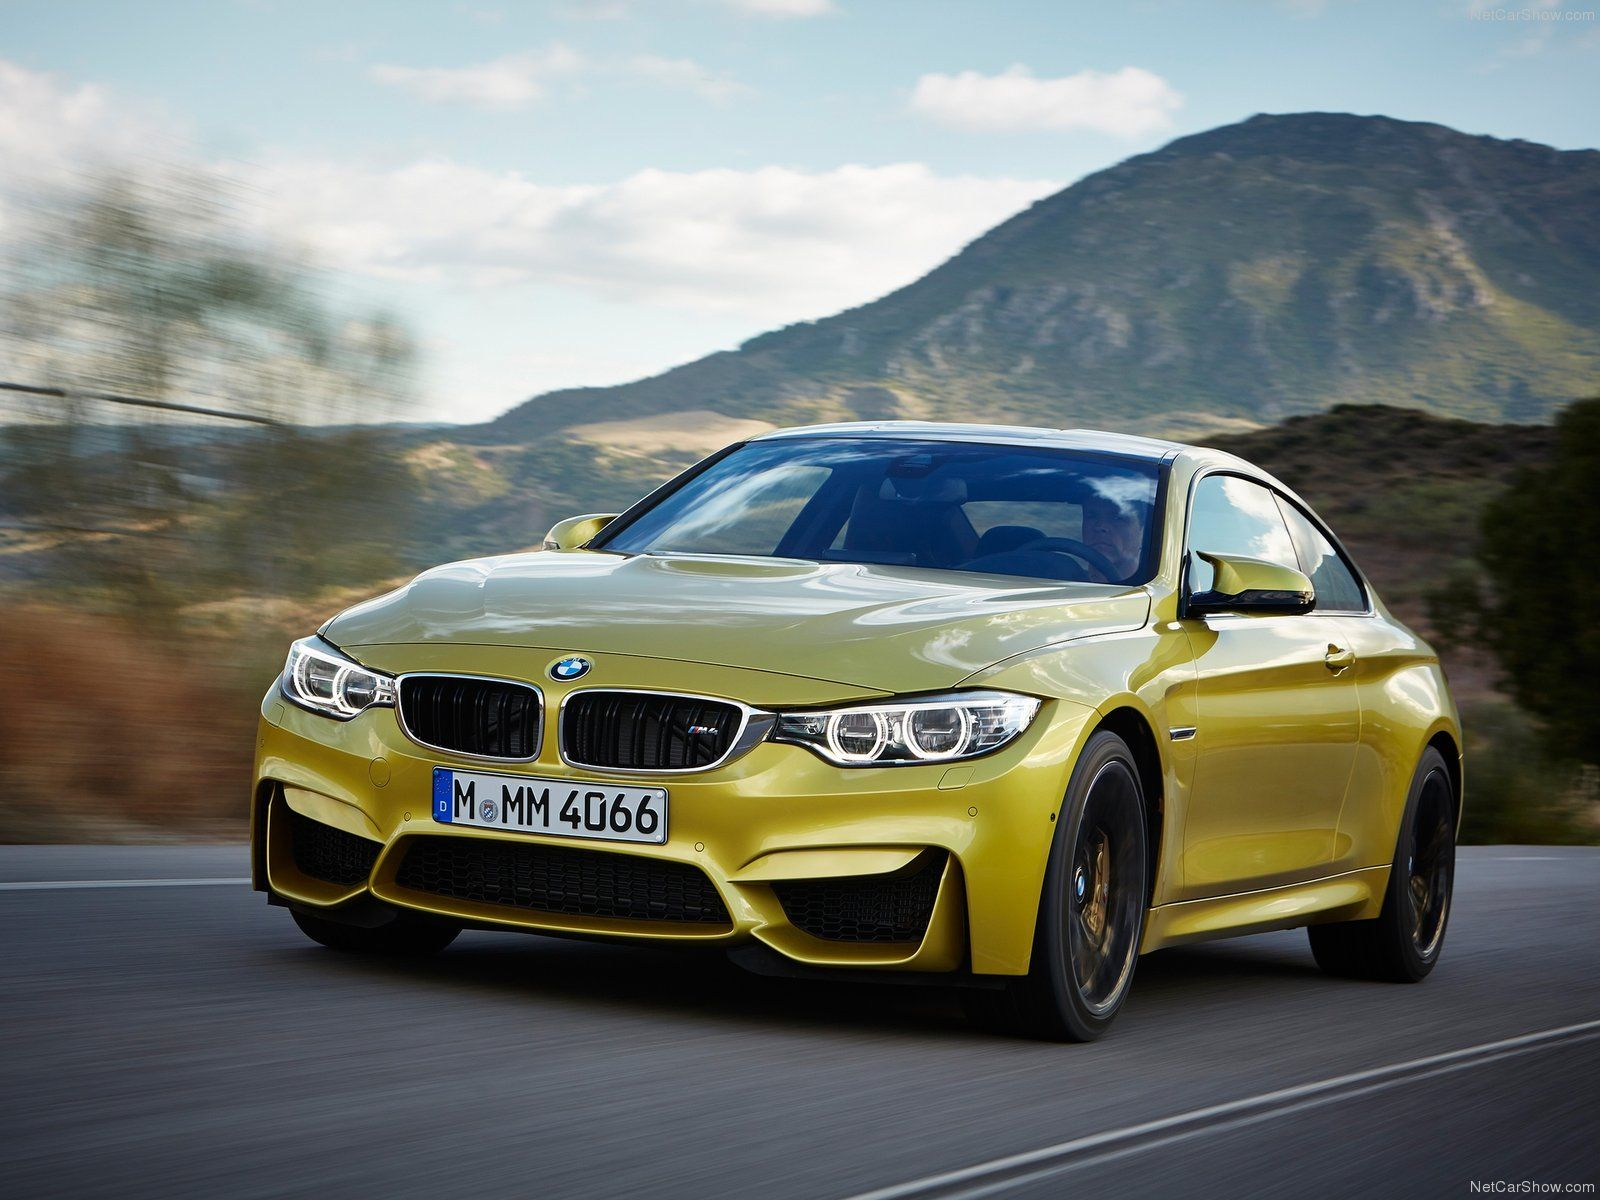 5c5028b4687ed173b08fc237e51c845e Great Description About Bmw 650i 2015 with Fabulous Pictures Cars Review